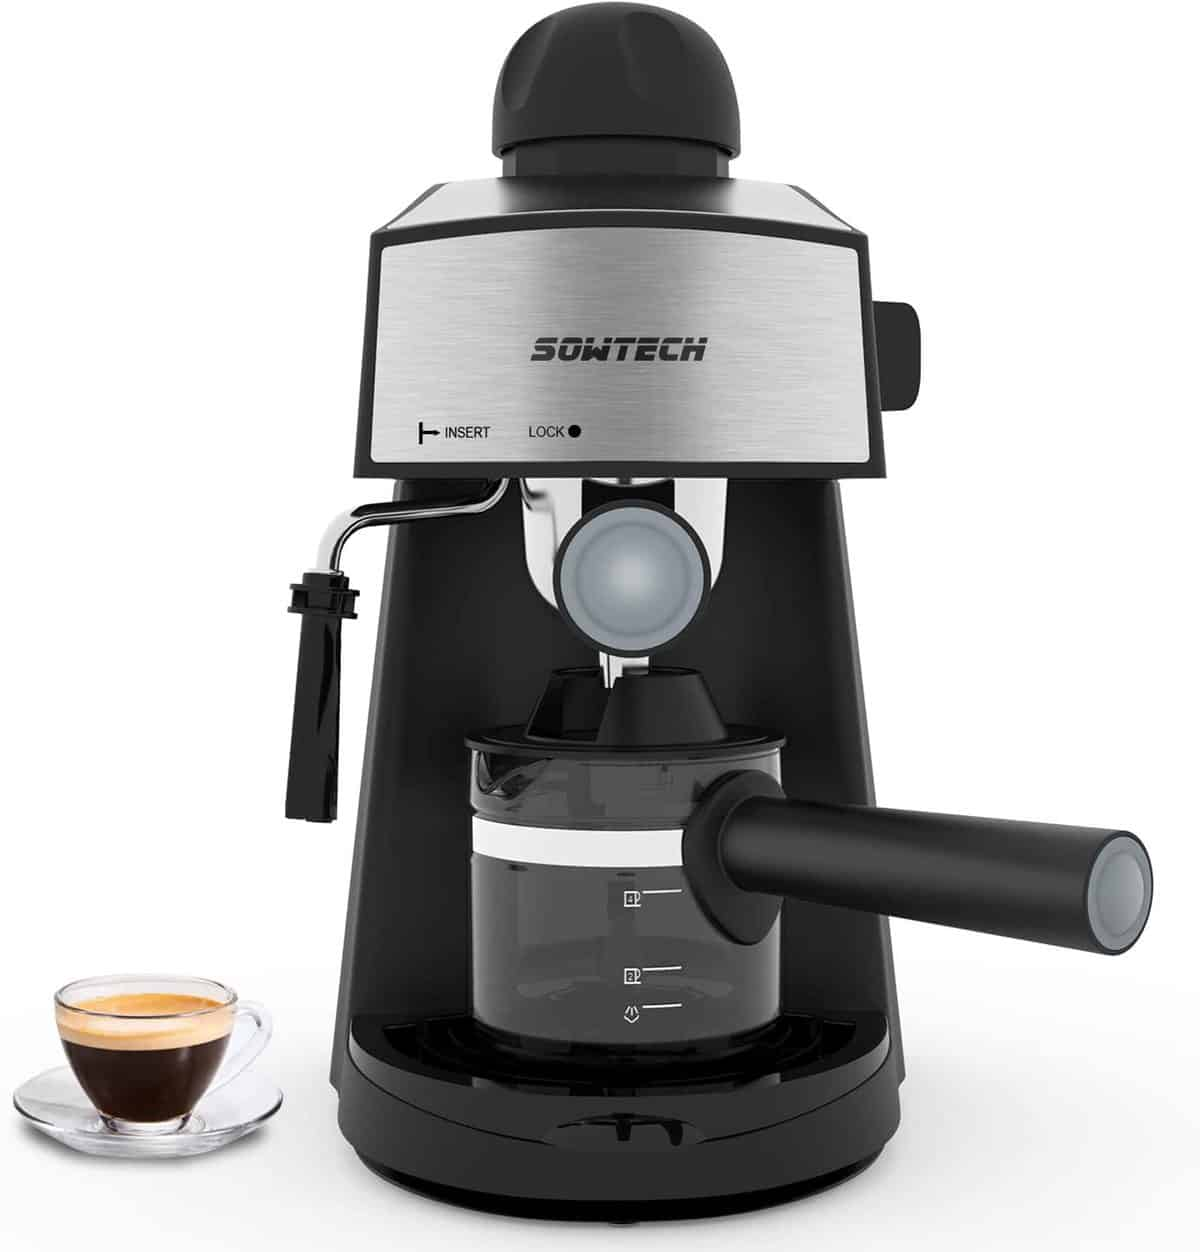 Sowtech 3.5 Bar Espresso Machine